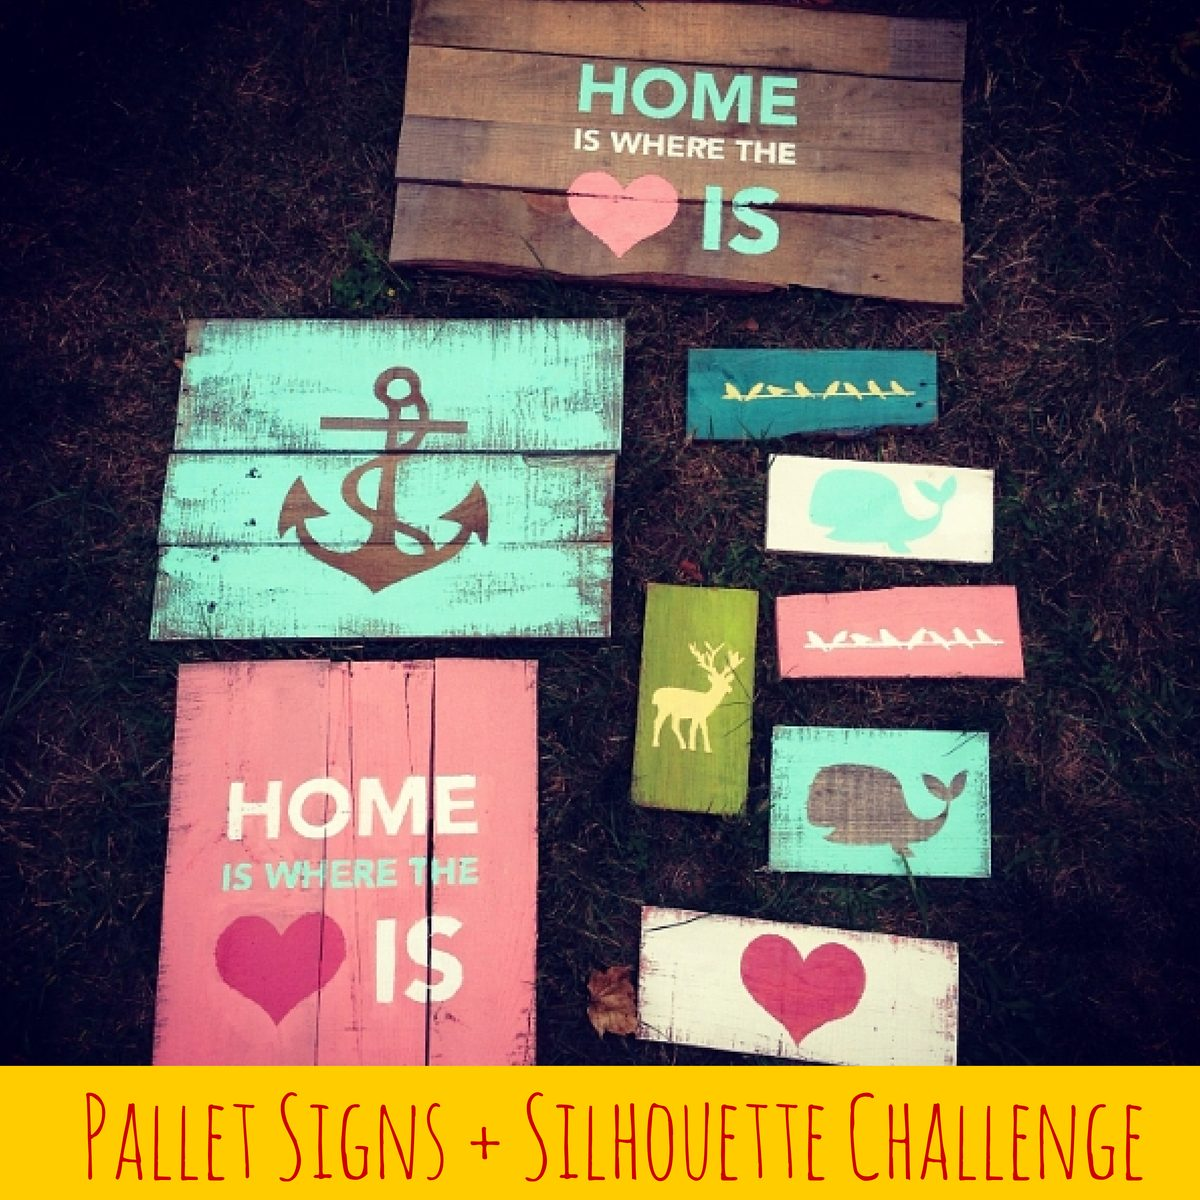 Pallet Signs and the Silhouette Challenge